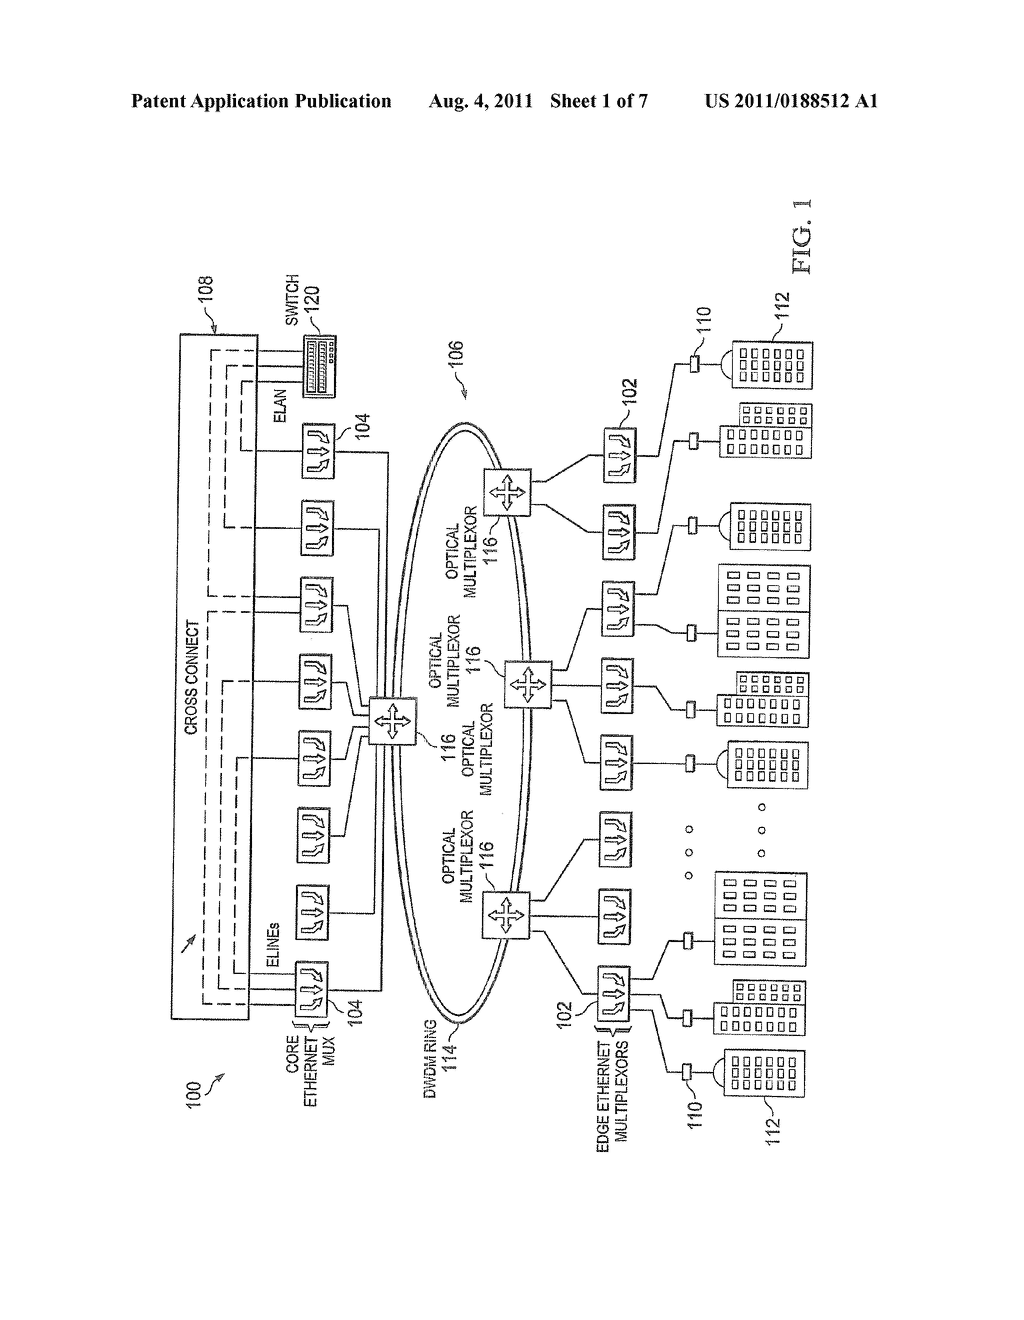 hight resolution of cross connect using ethernet multiplexors for a simple metro ethernet network diagram schematic and image 02